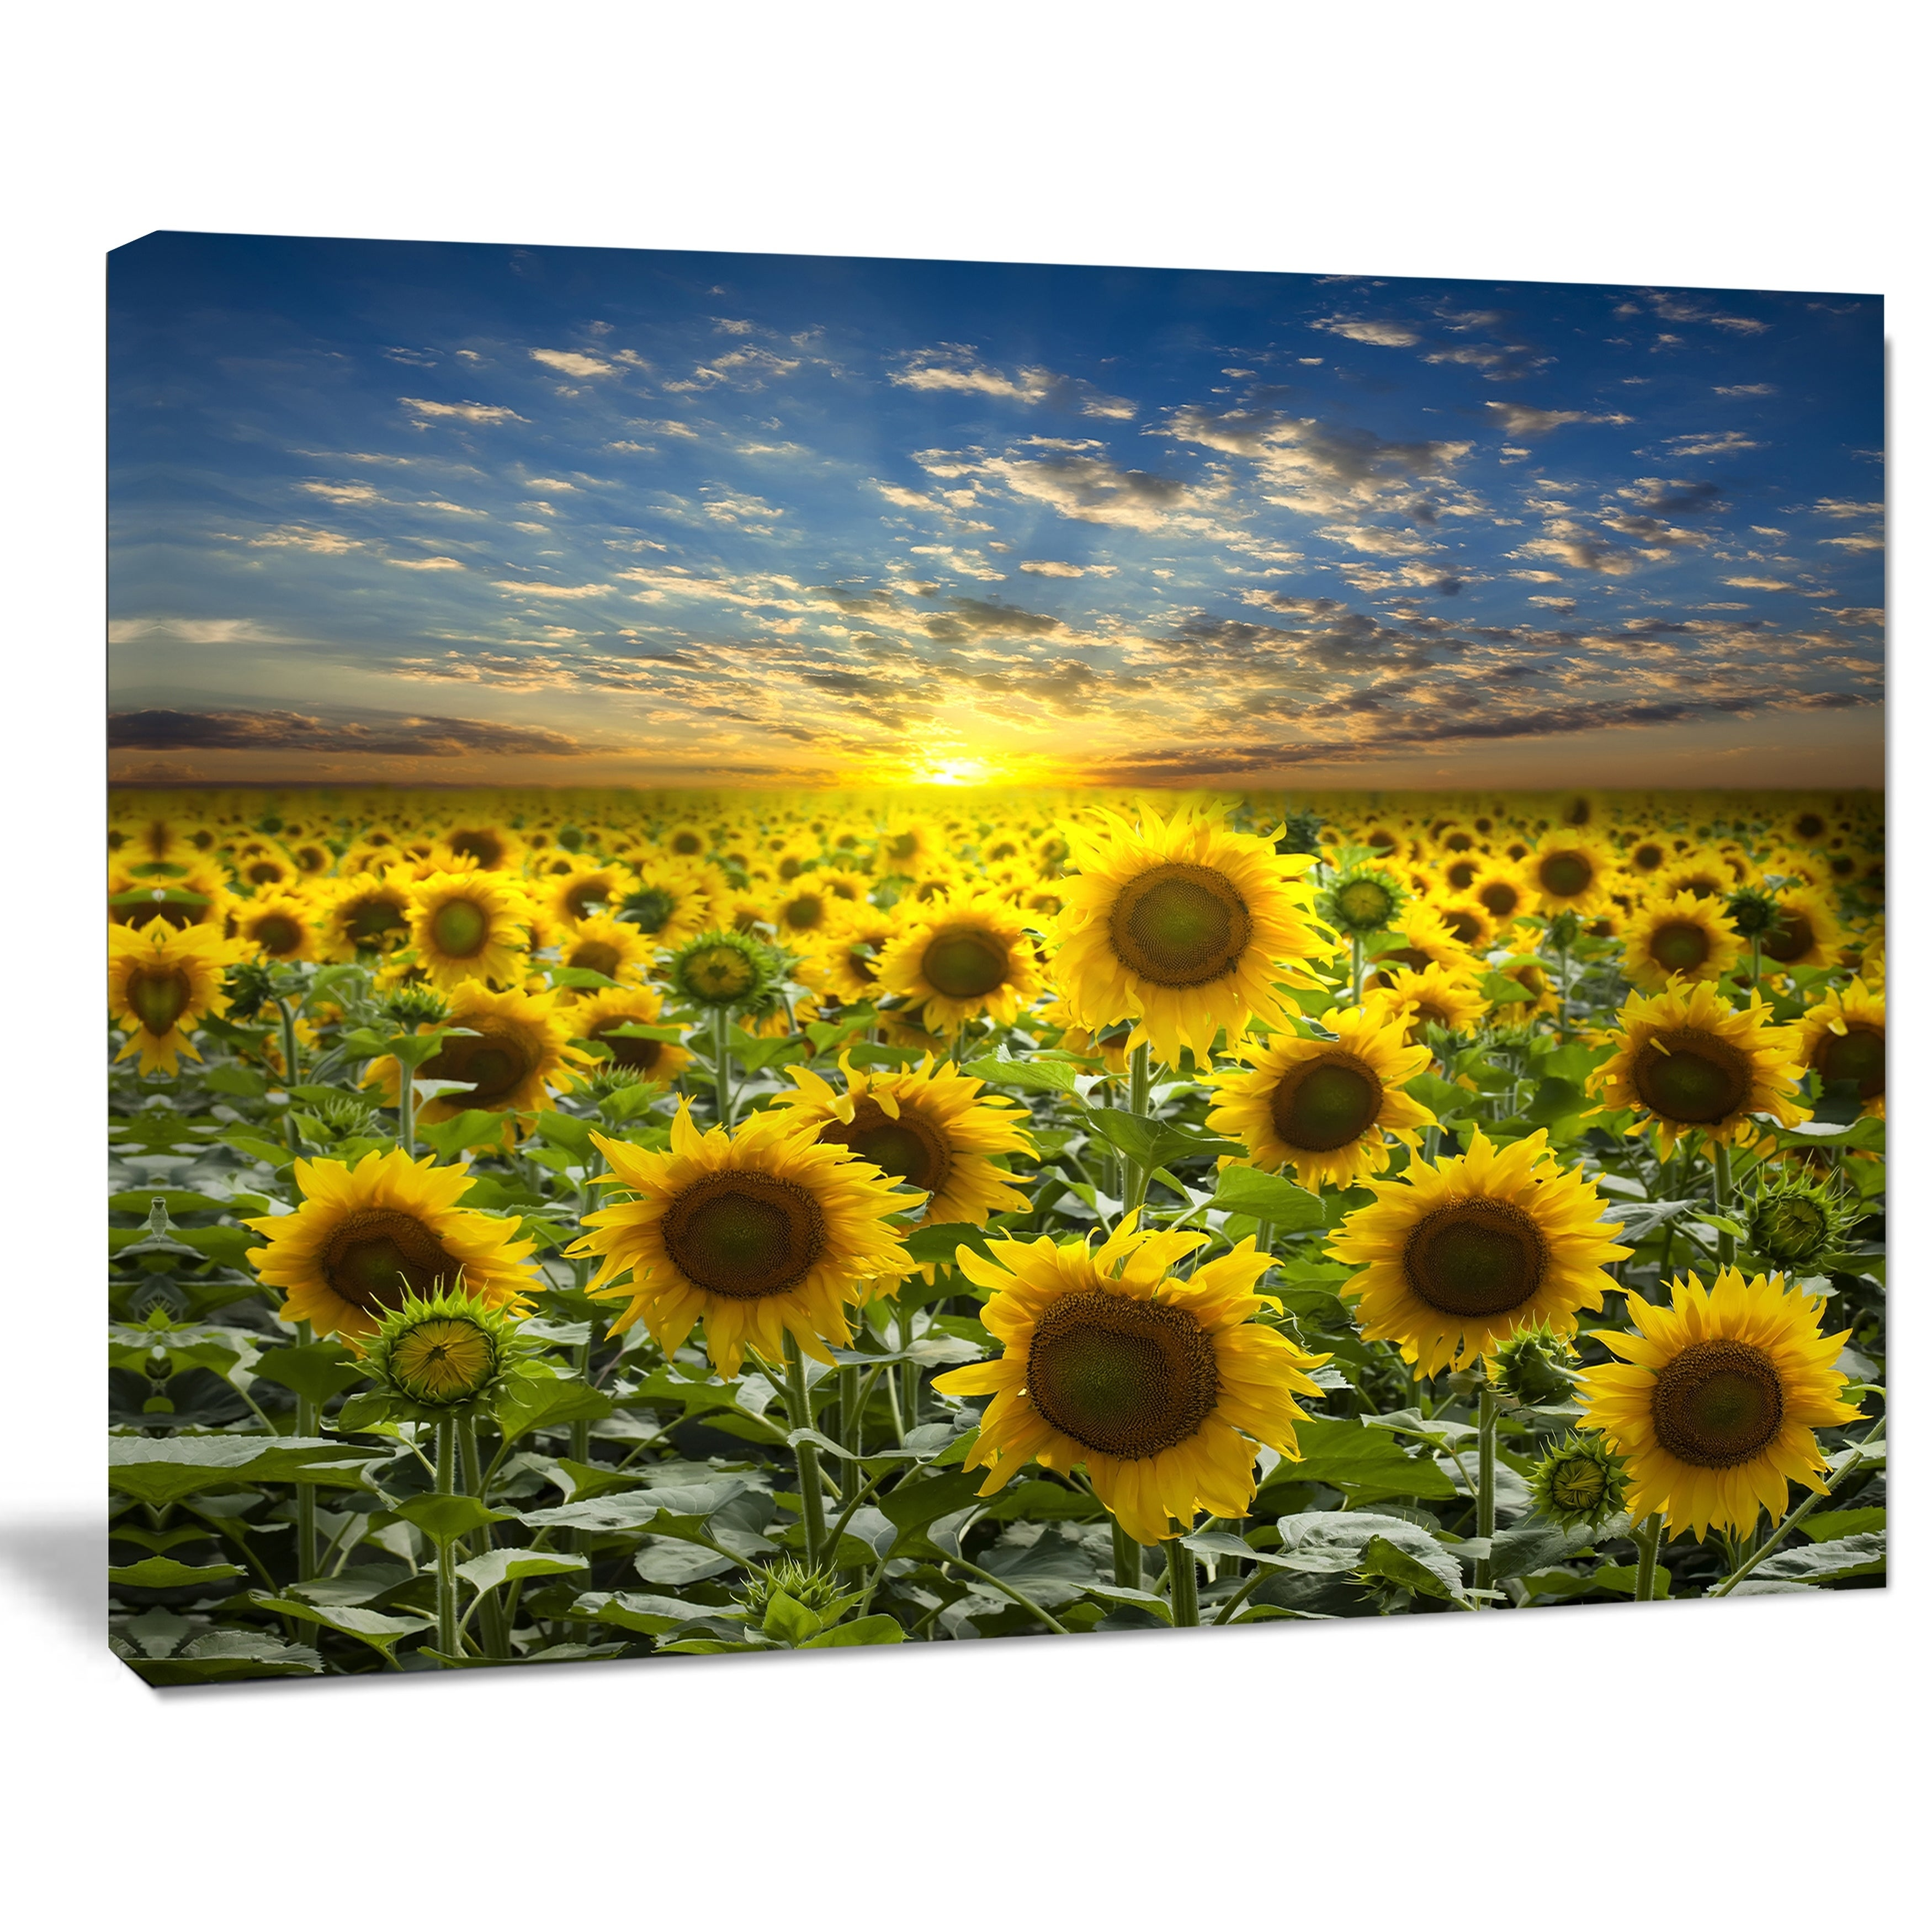 Field of Blooming Sunflowers - Large Flower Canvas Wall Art - Green